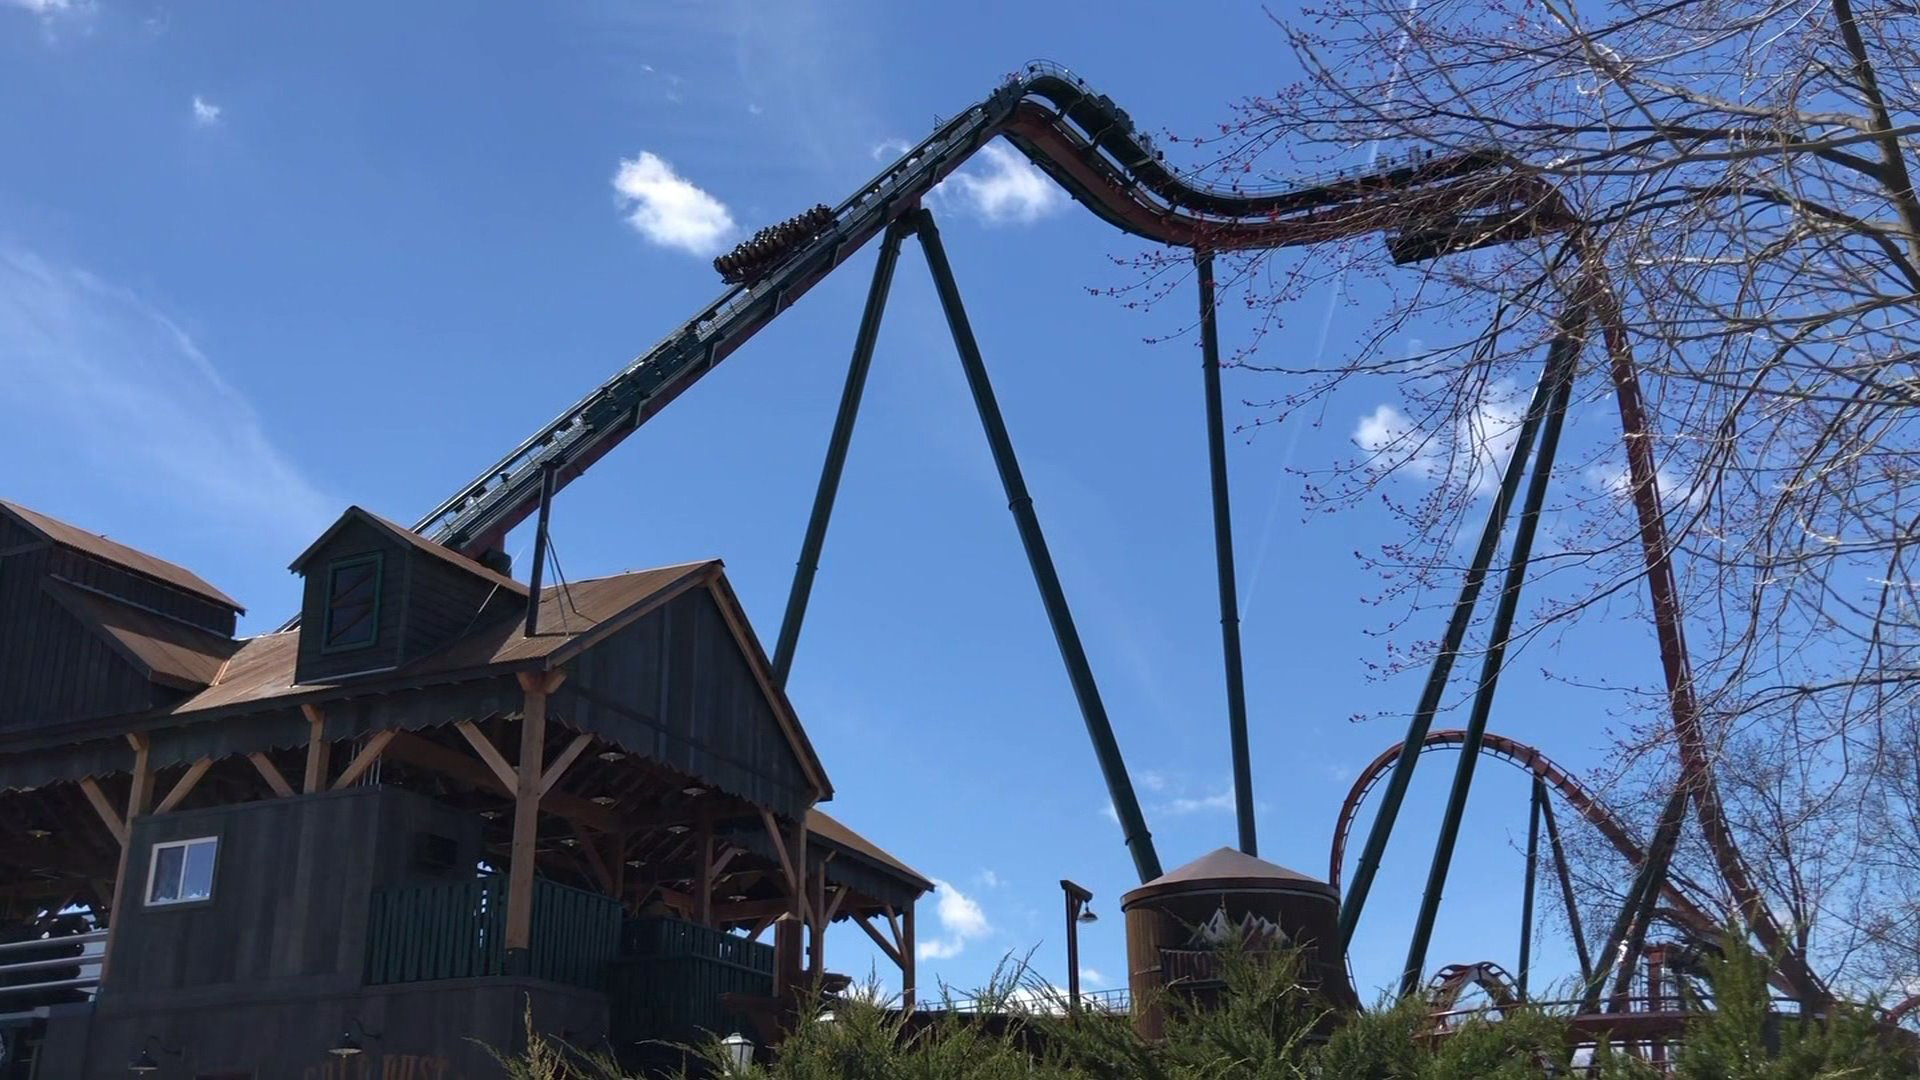 The Yukon Striker roller coaster is set to open at Canada's Wonderland theme park on May 3, 2019. (Credit: WGN)